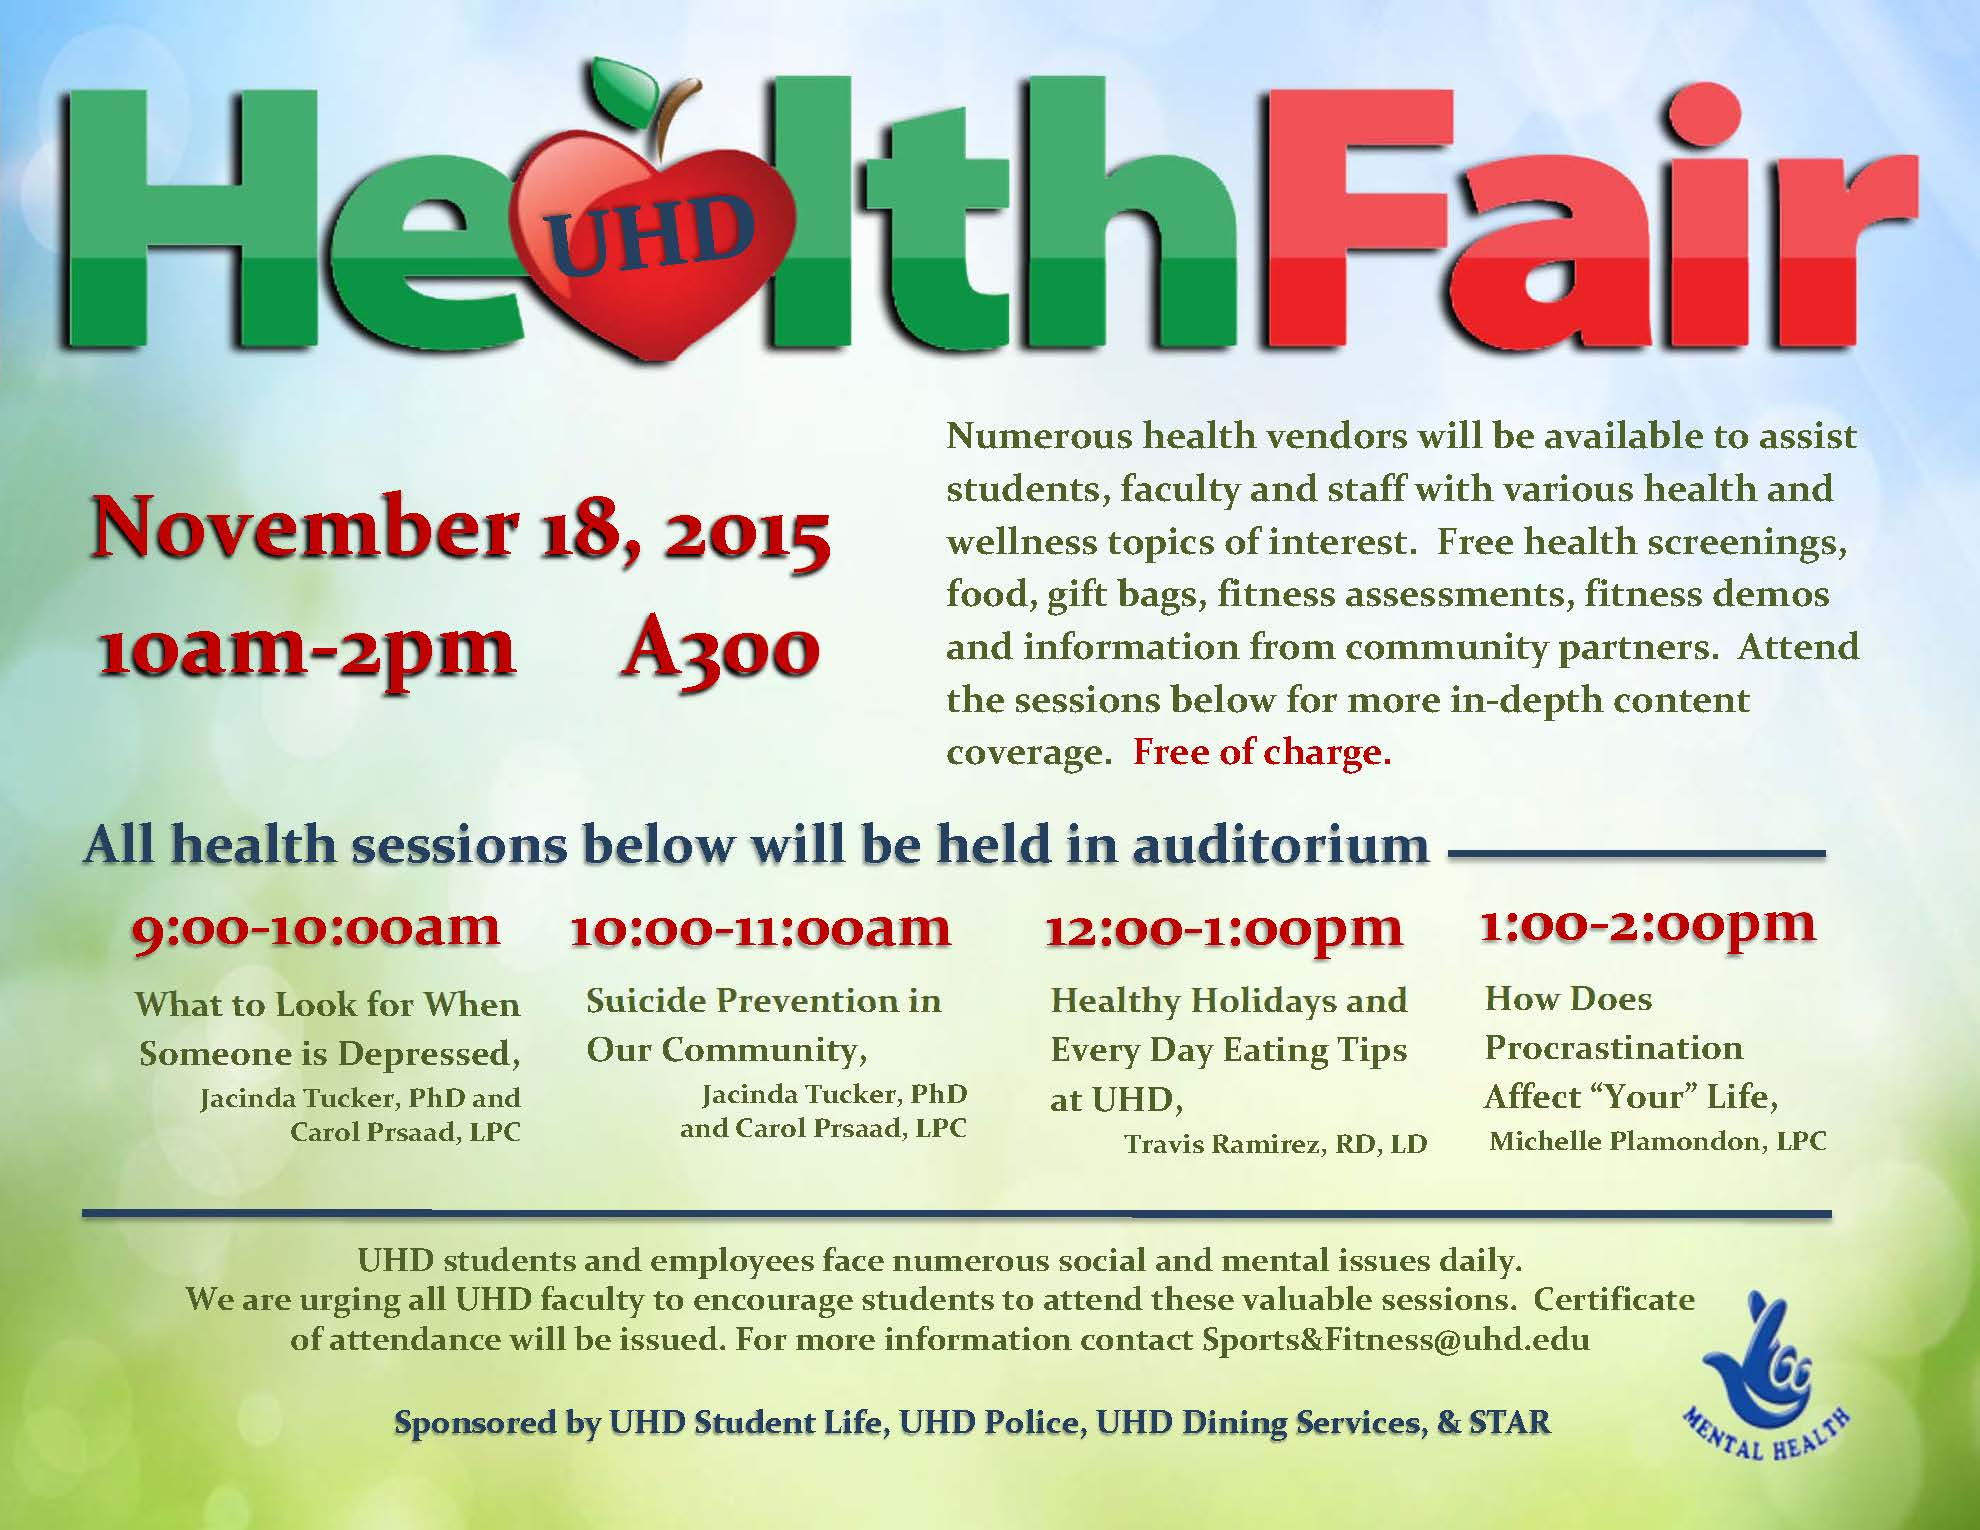 Health Fair Workshops Flyer